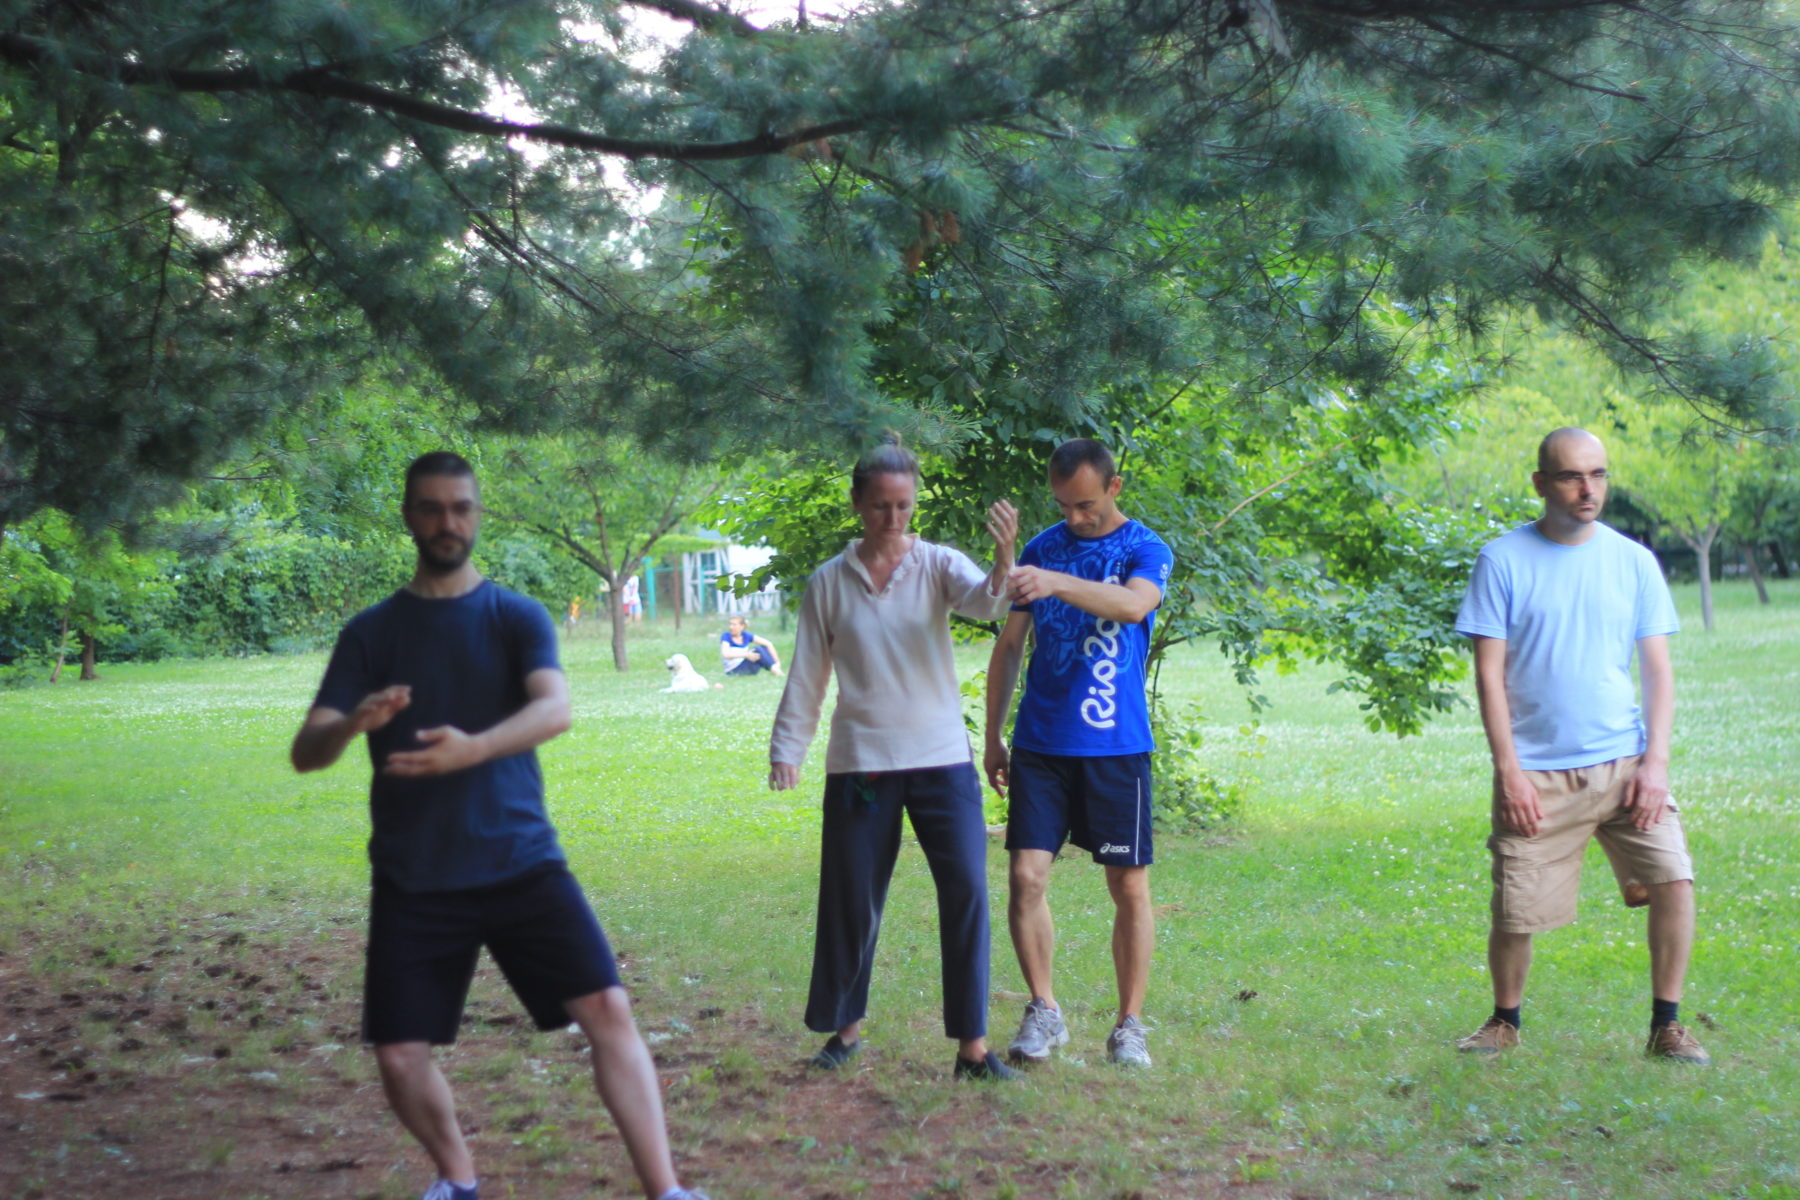 Curs Tai Chi in parc